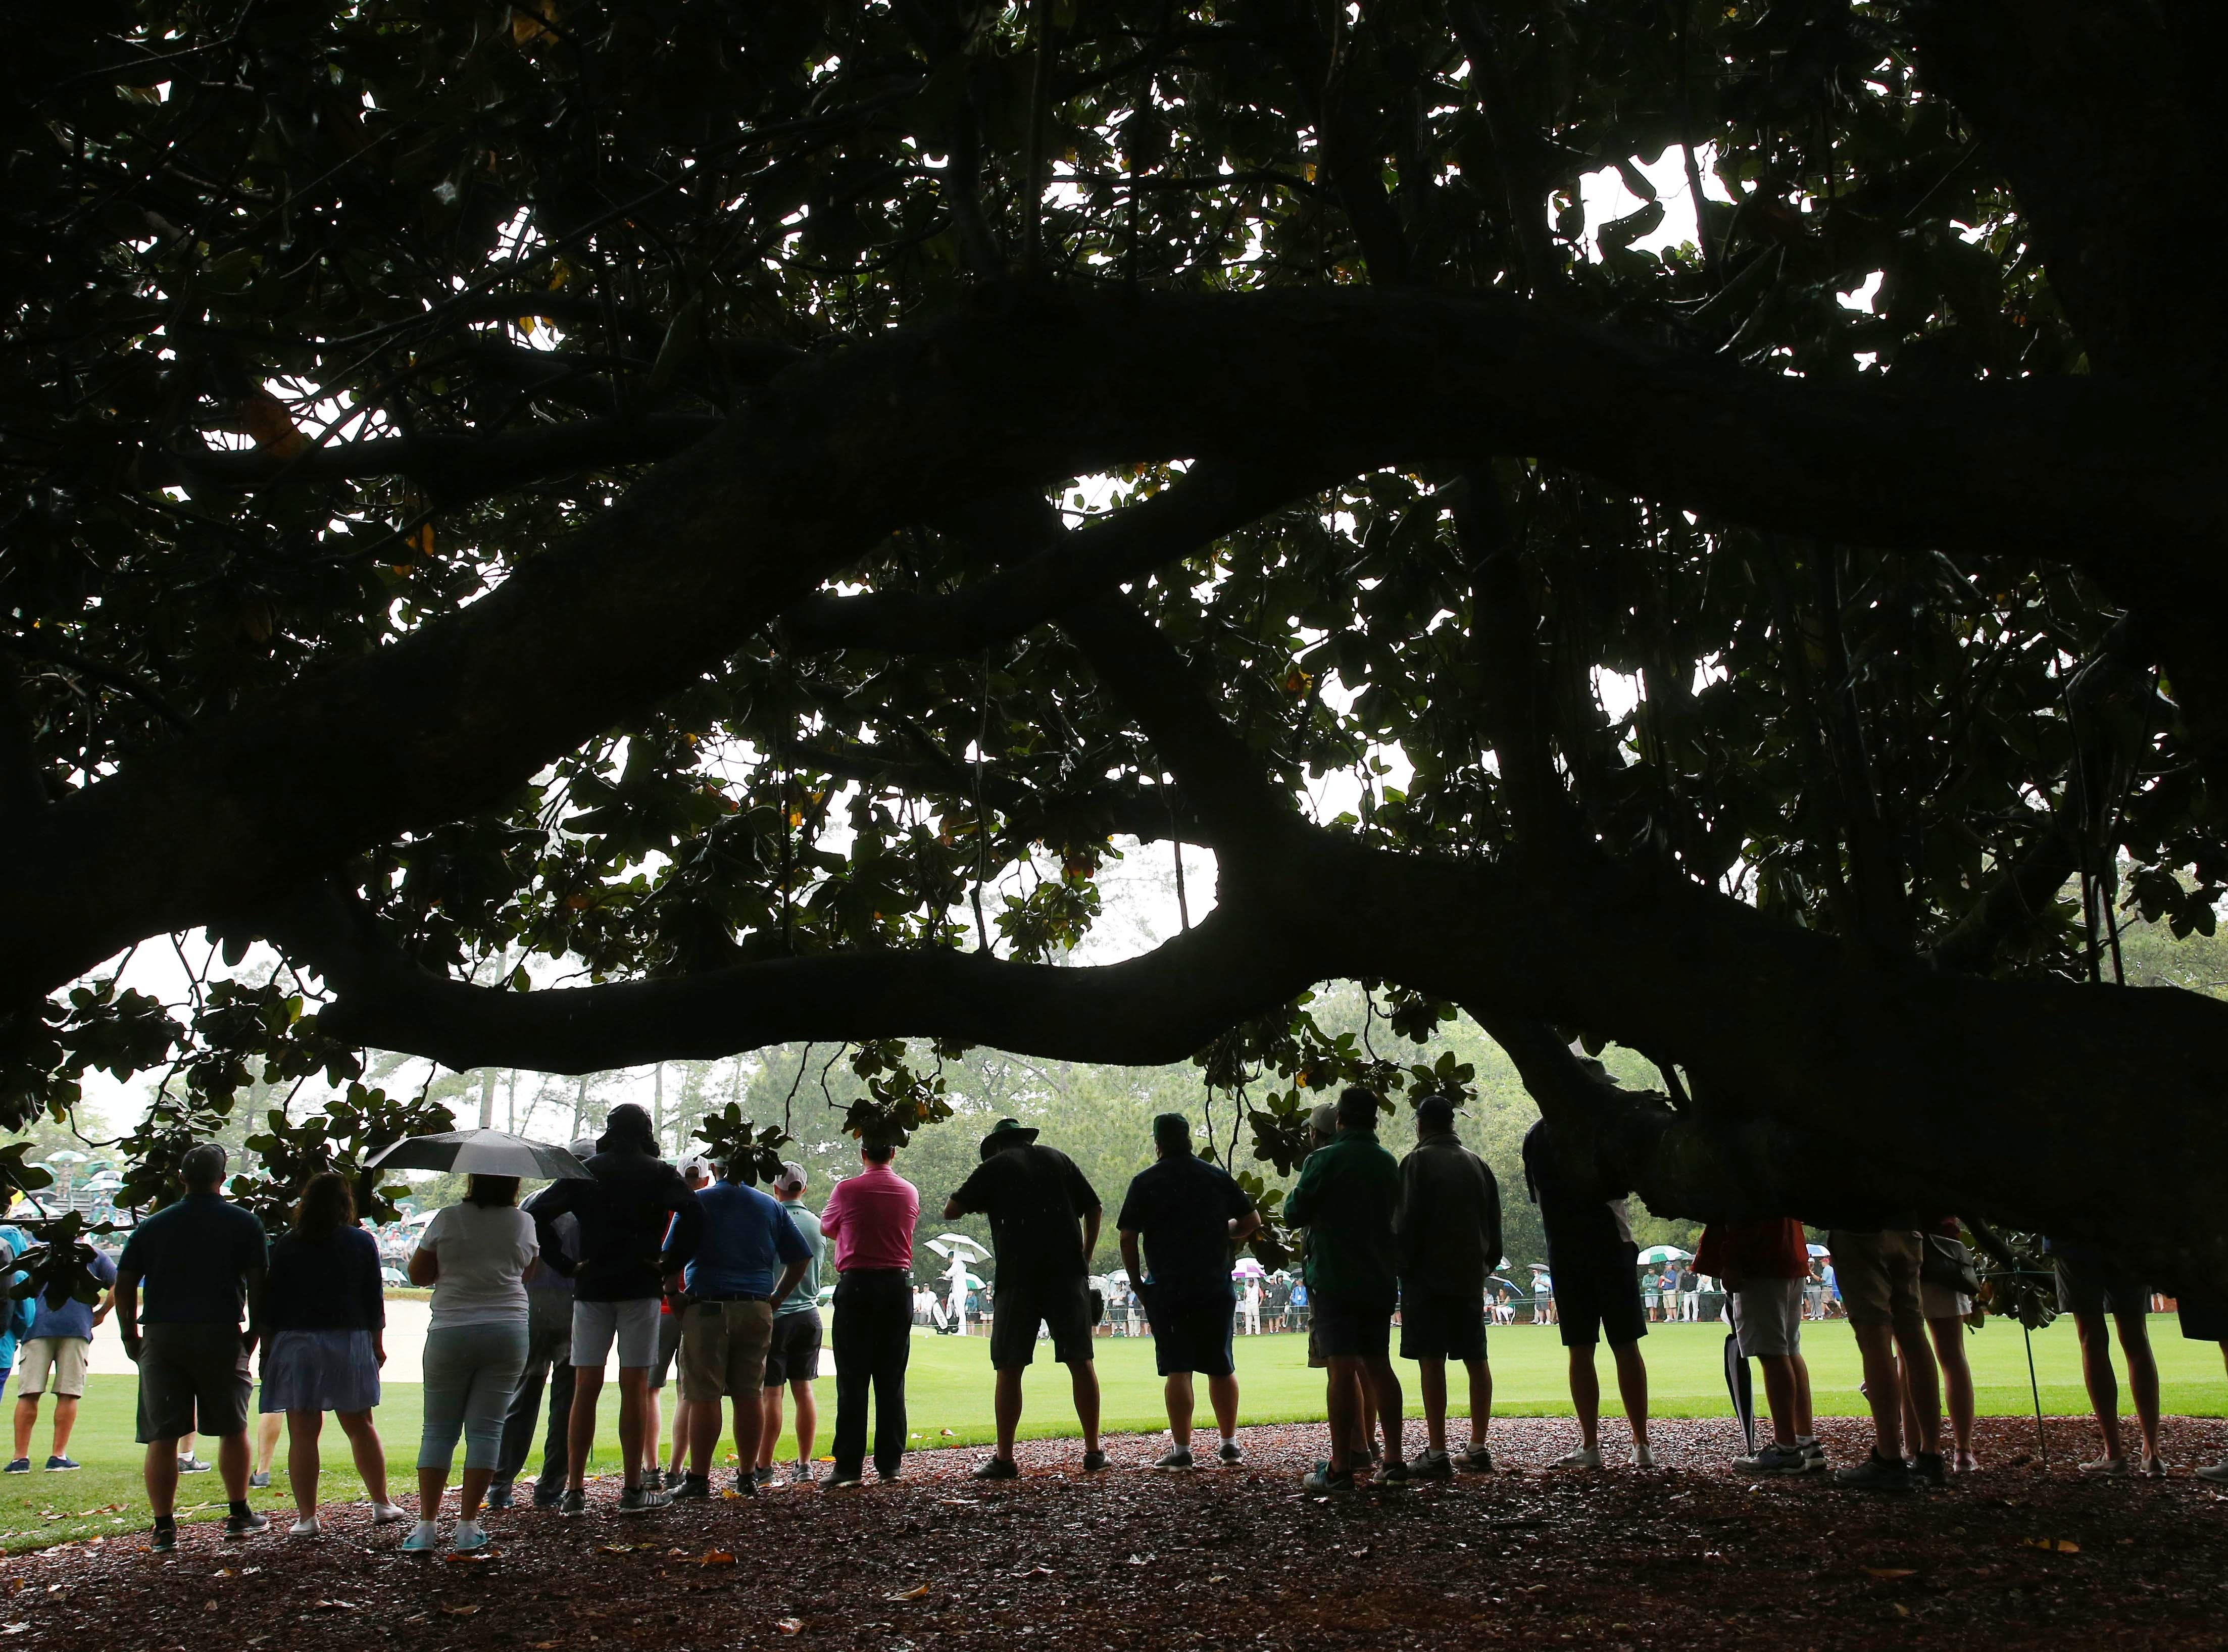 Apr 12, 2019; Augusta, GA, USA; Patrons watch from under the big oak tree during the second round of The Masters golf tournament at Augusta National Golf Club. Mandatory Credit: Rob Schumacher-USA TODAY Sports